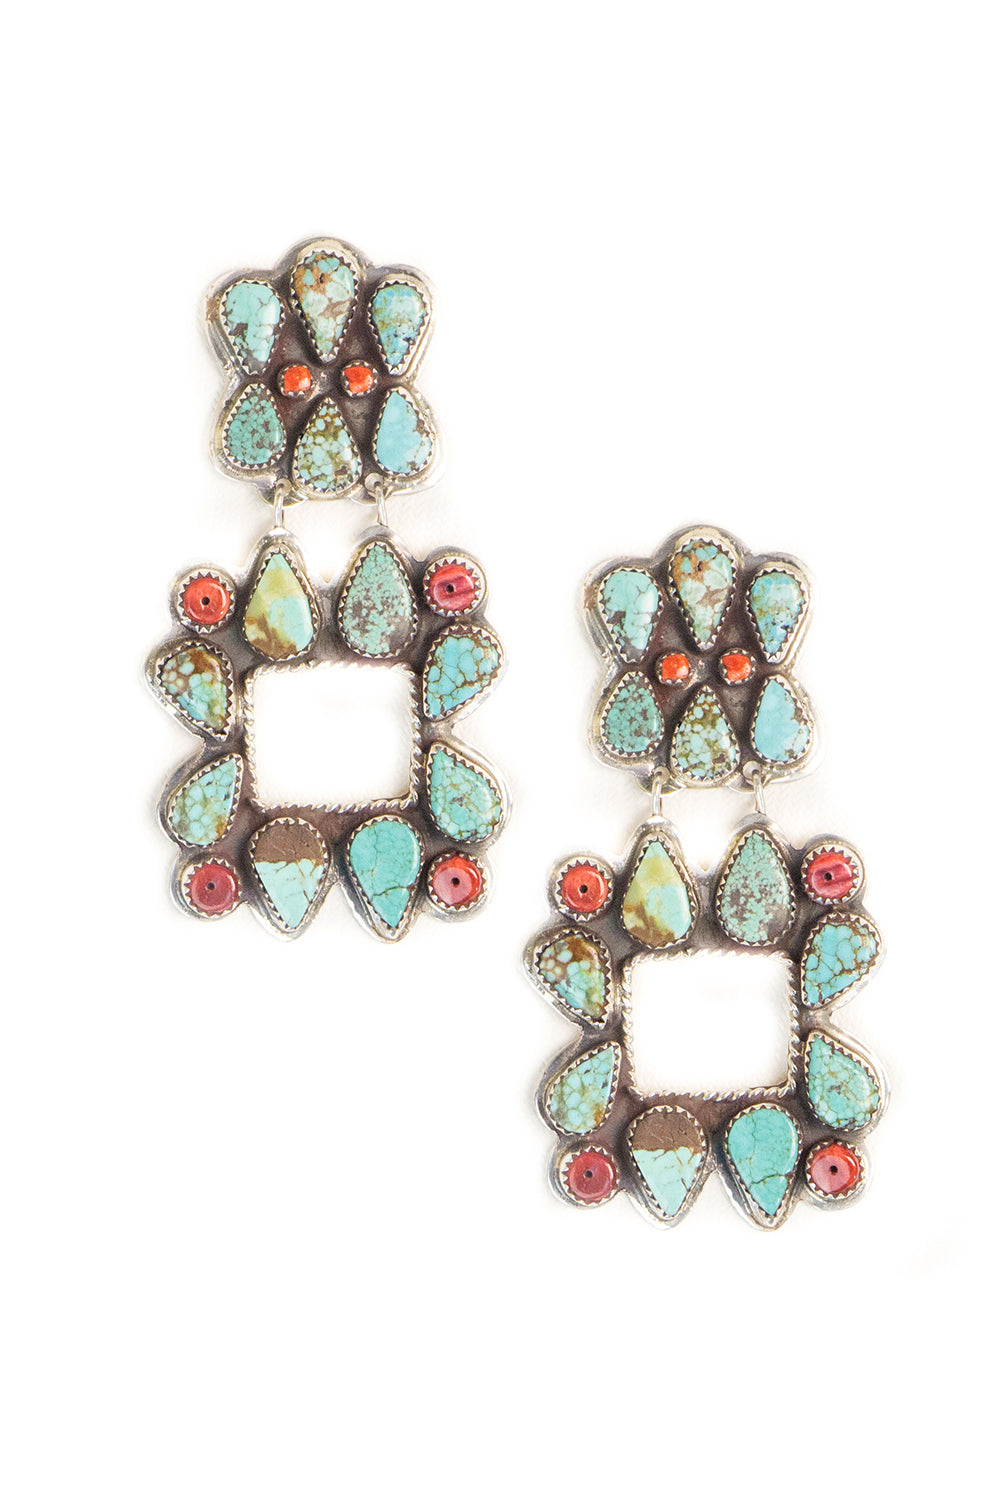 Earrings, Chandelier, Turquoise & Coral, Hallmark, Vintage